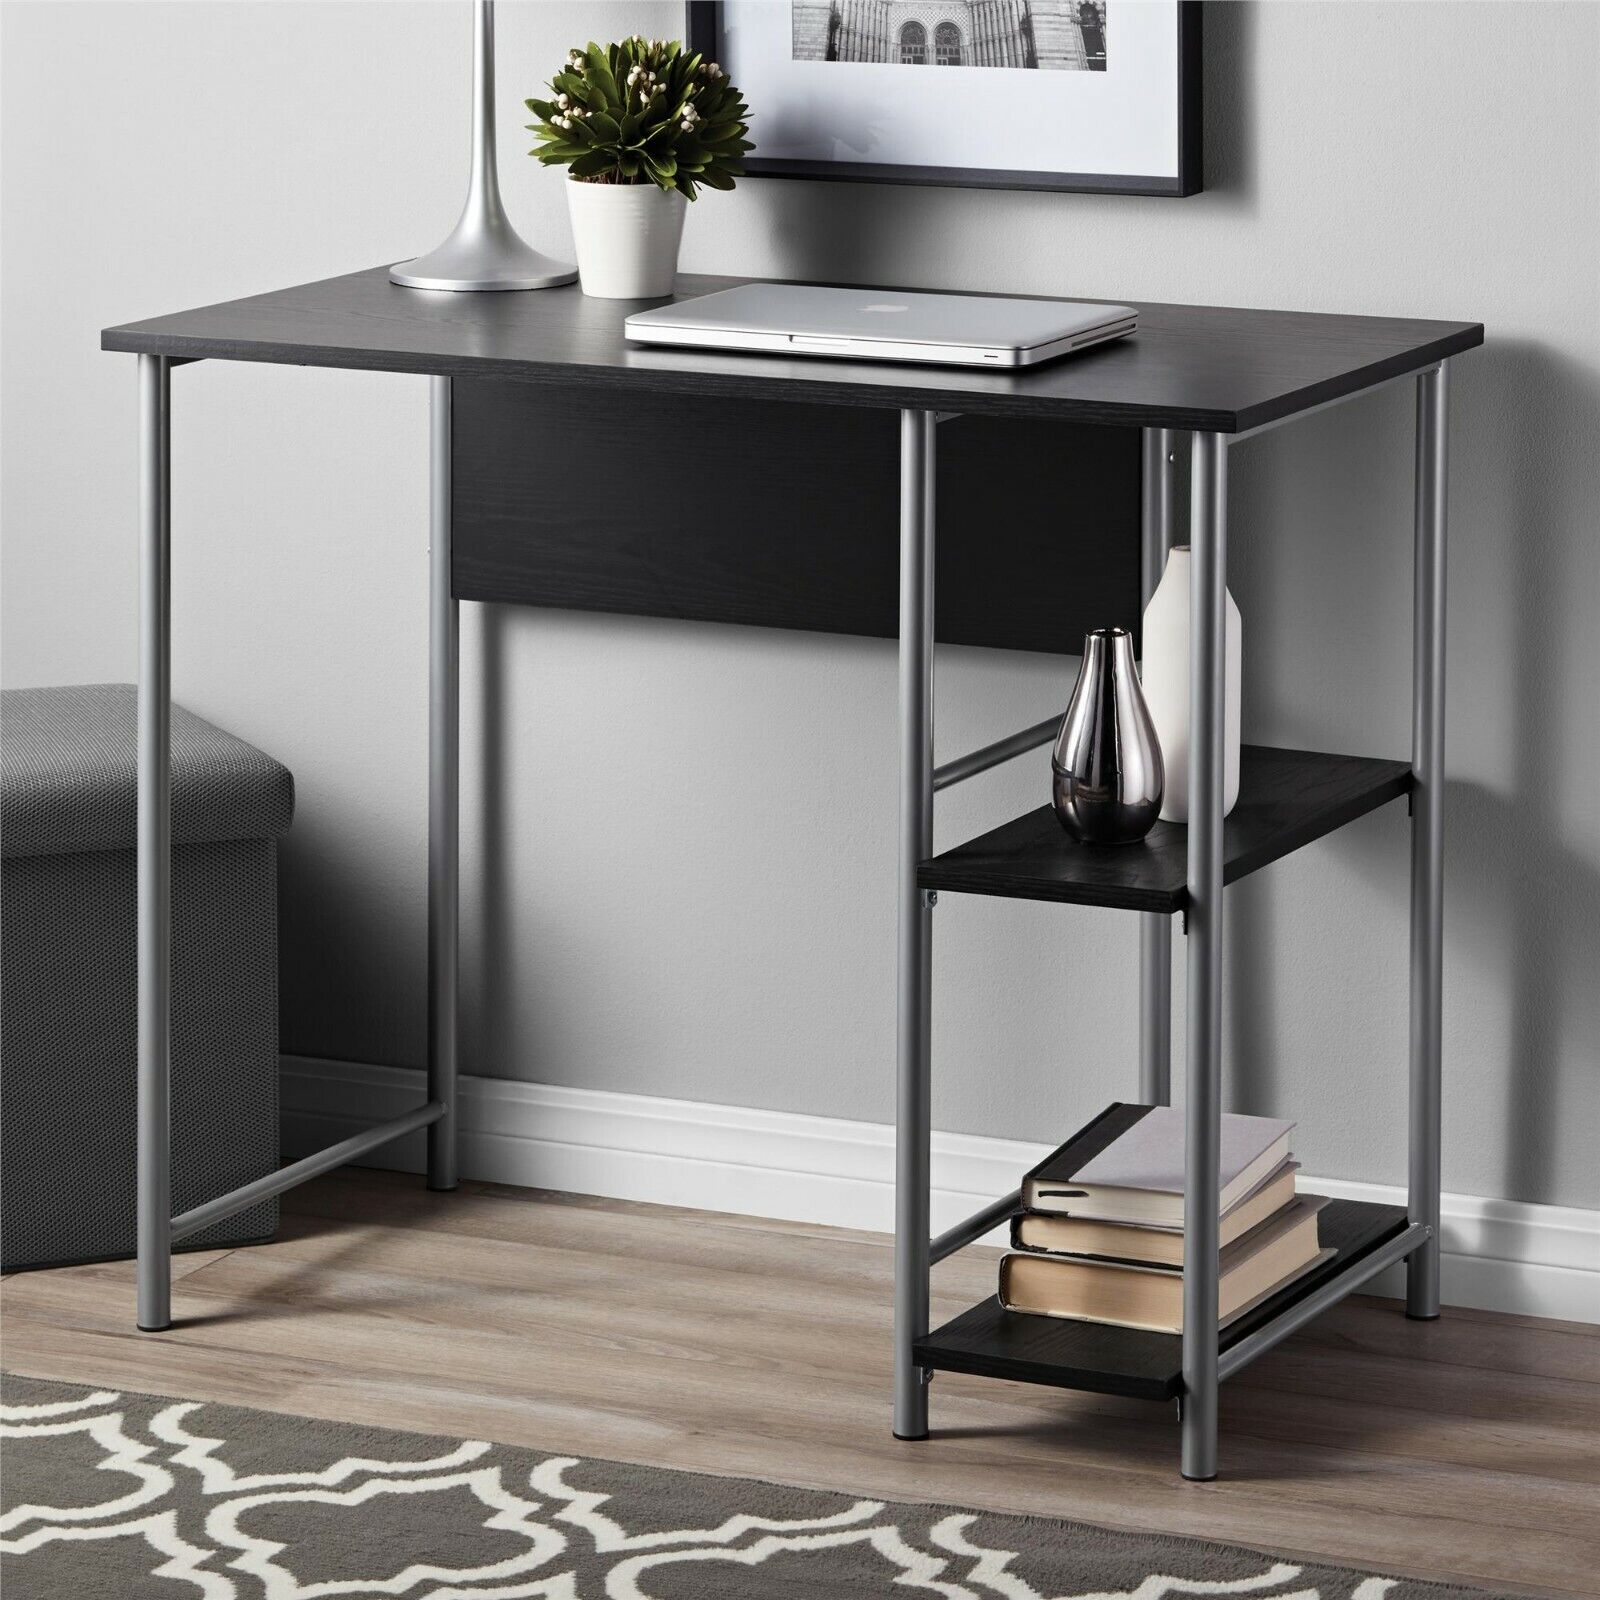 Desk Computer Small Study table black Wood & Metal For Offic